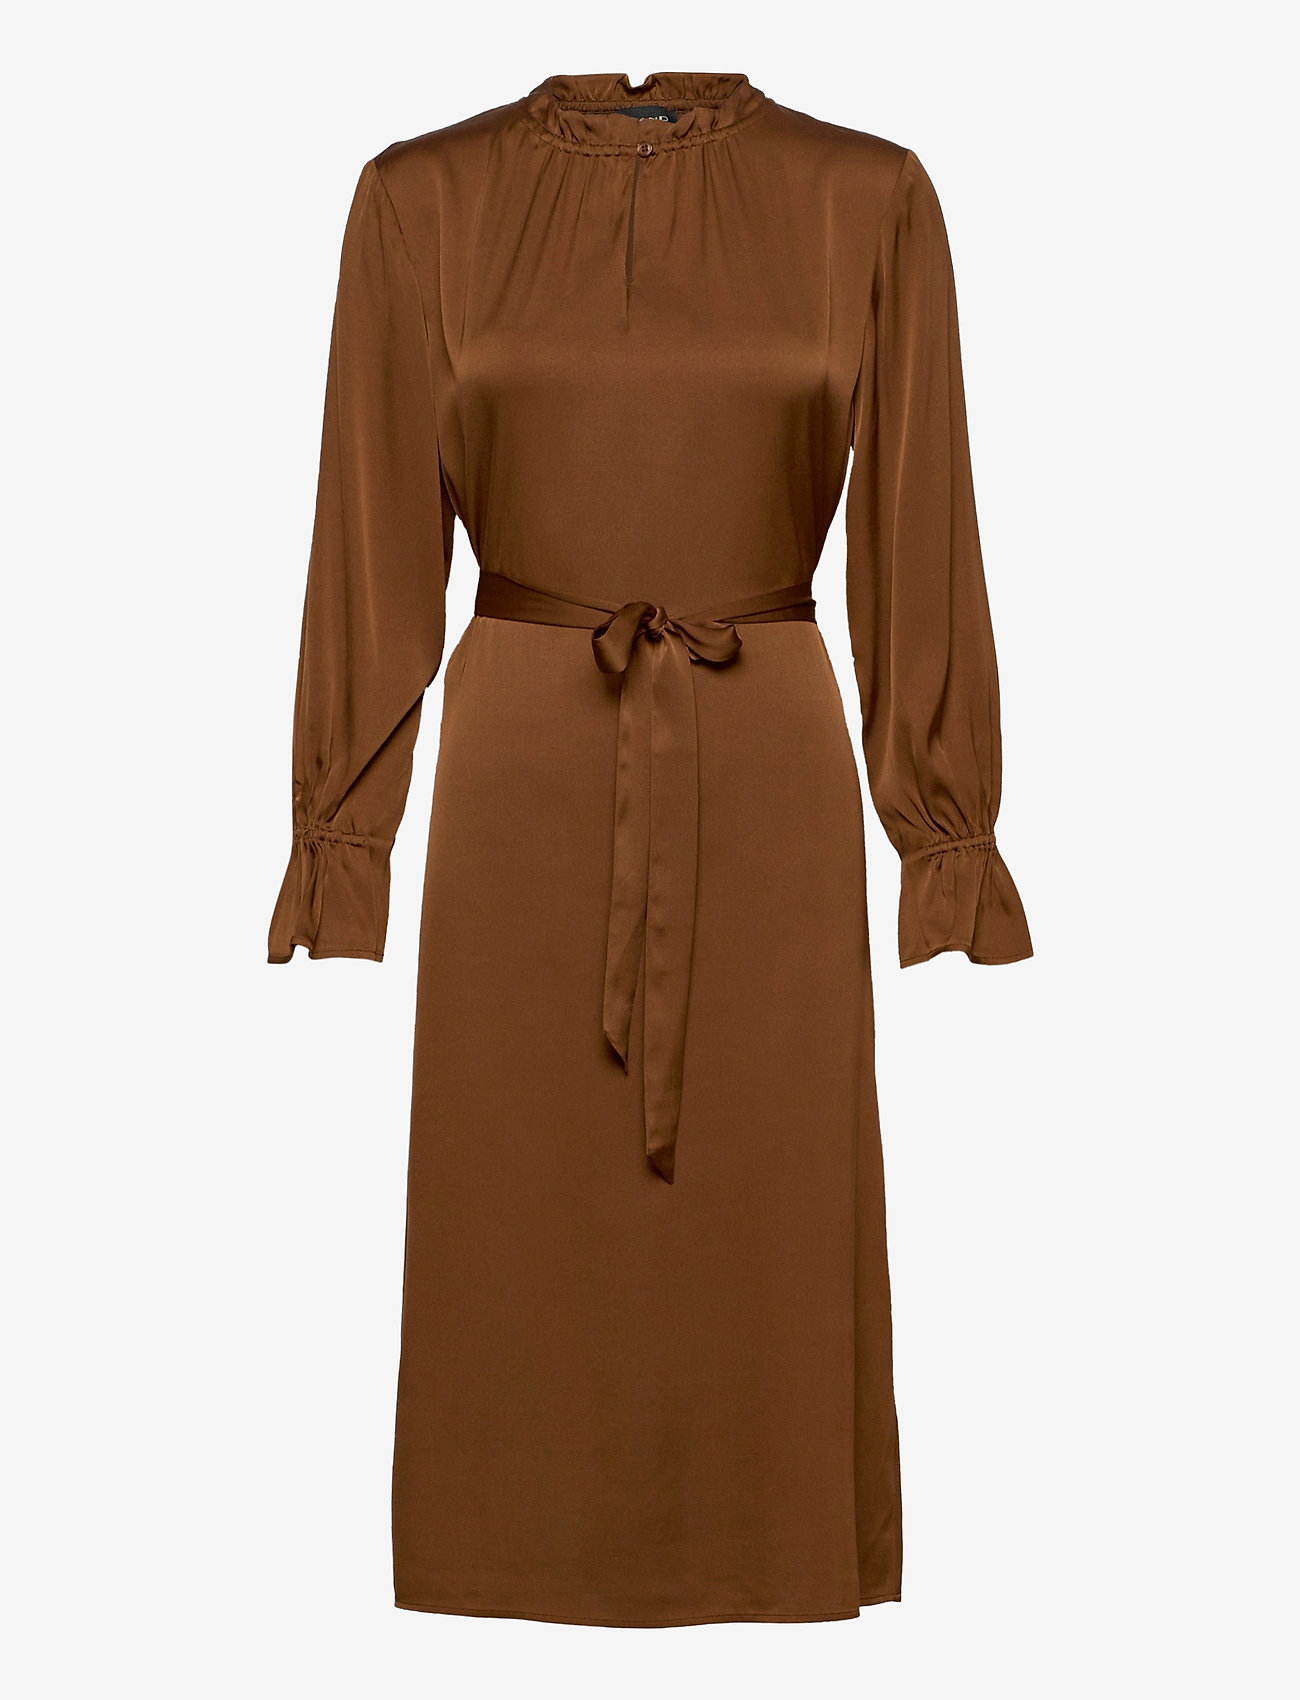 SAND - Satin Stretch - Raya FS Dress - robes midi - copper - 0